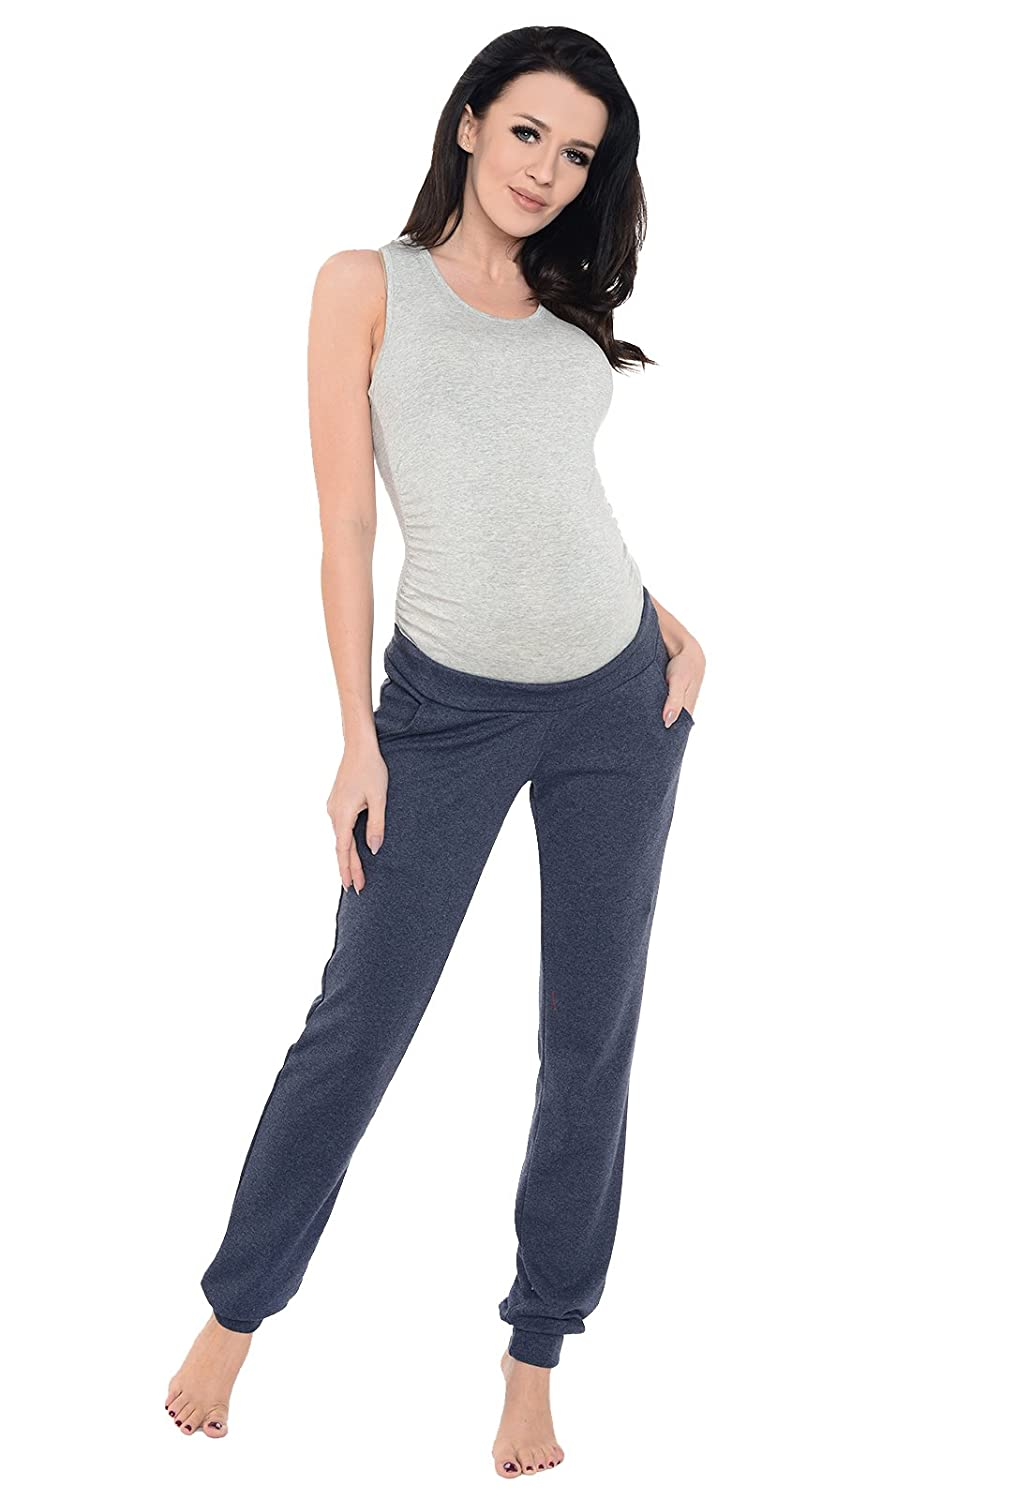 Purpless Maternity Pregnancy Under Bump Joggers Trousers 1314